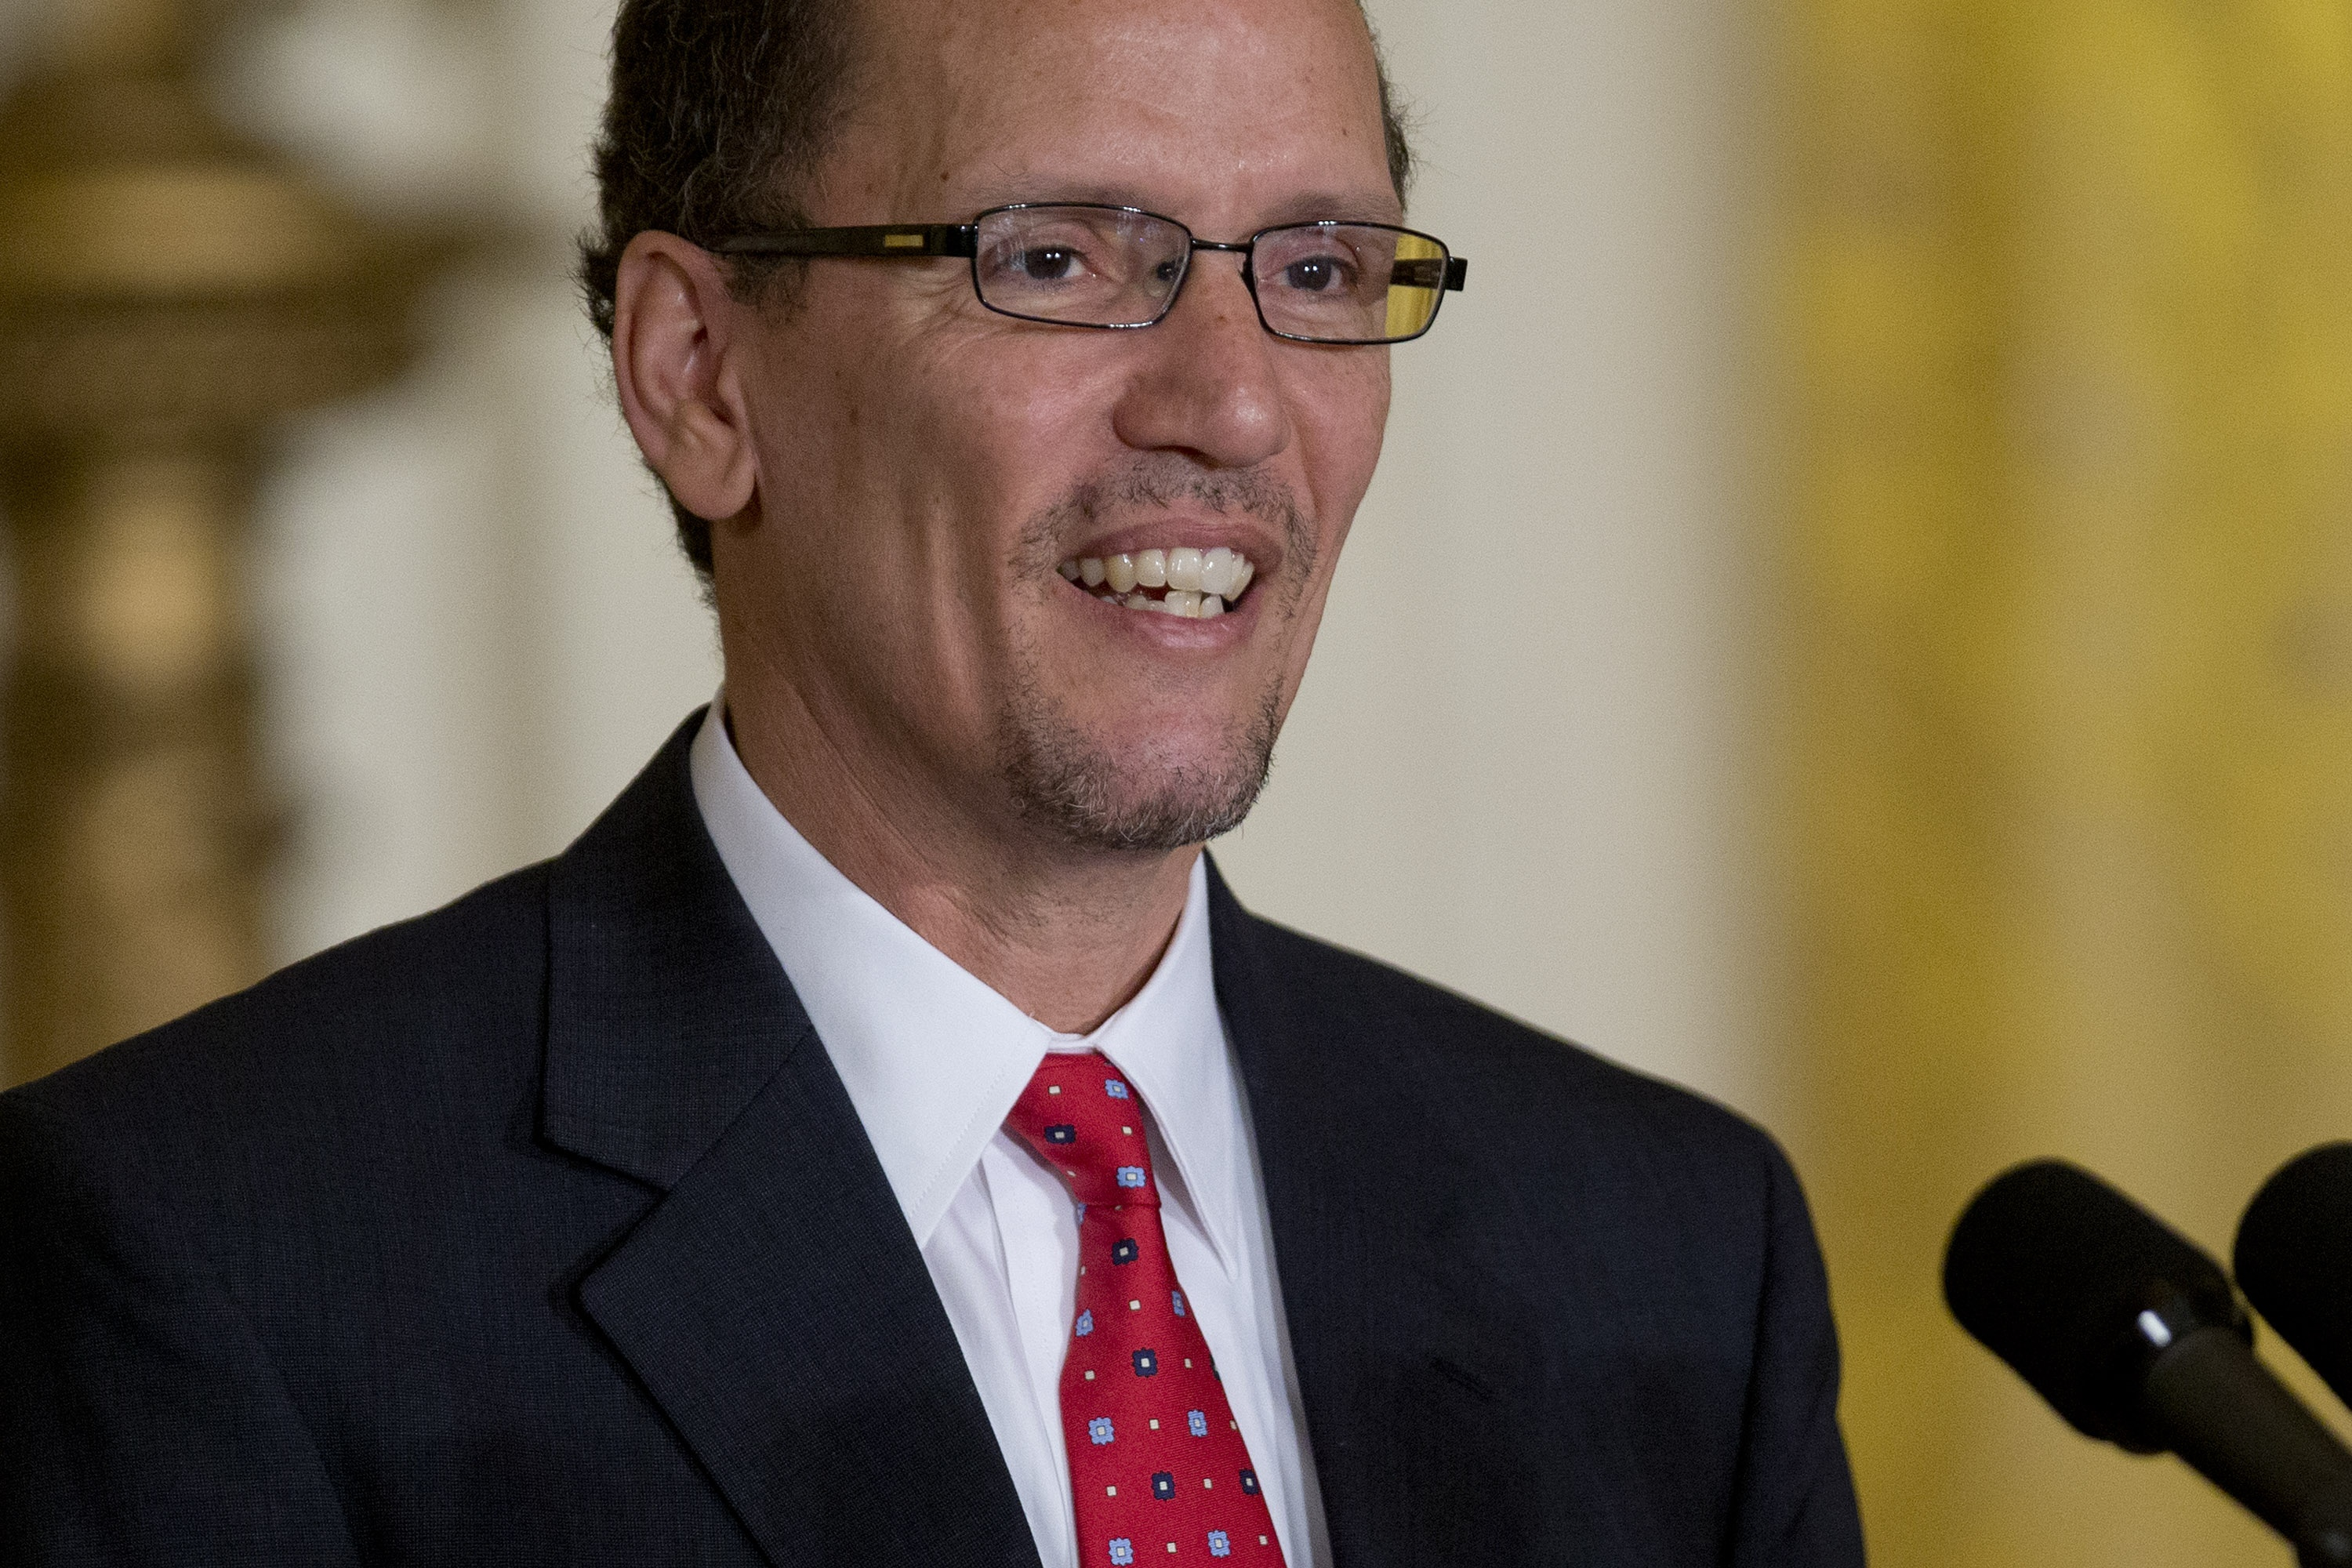 Labor Department proposes controversial fiduciary rule